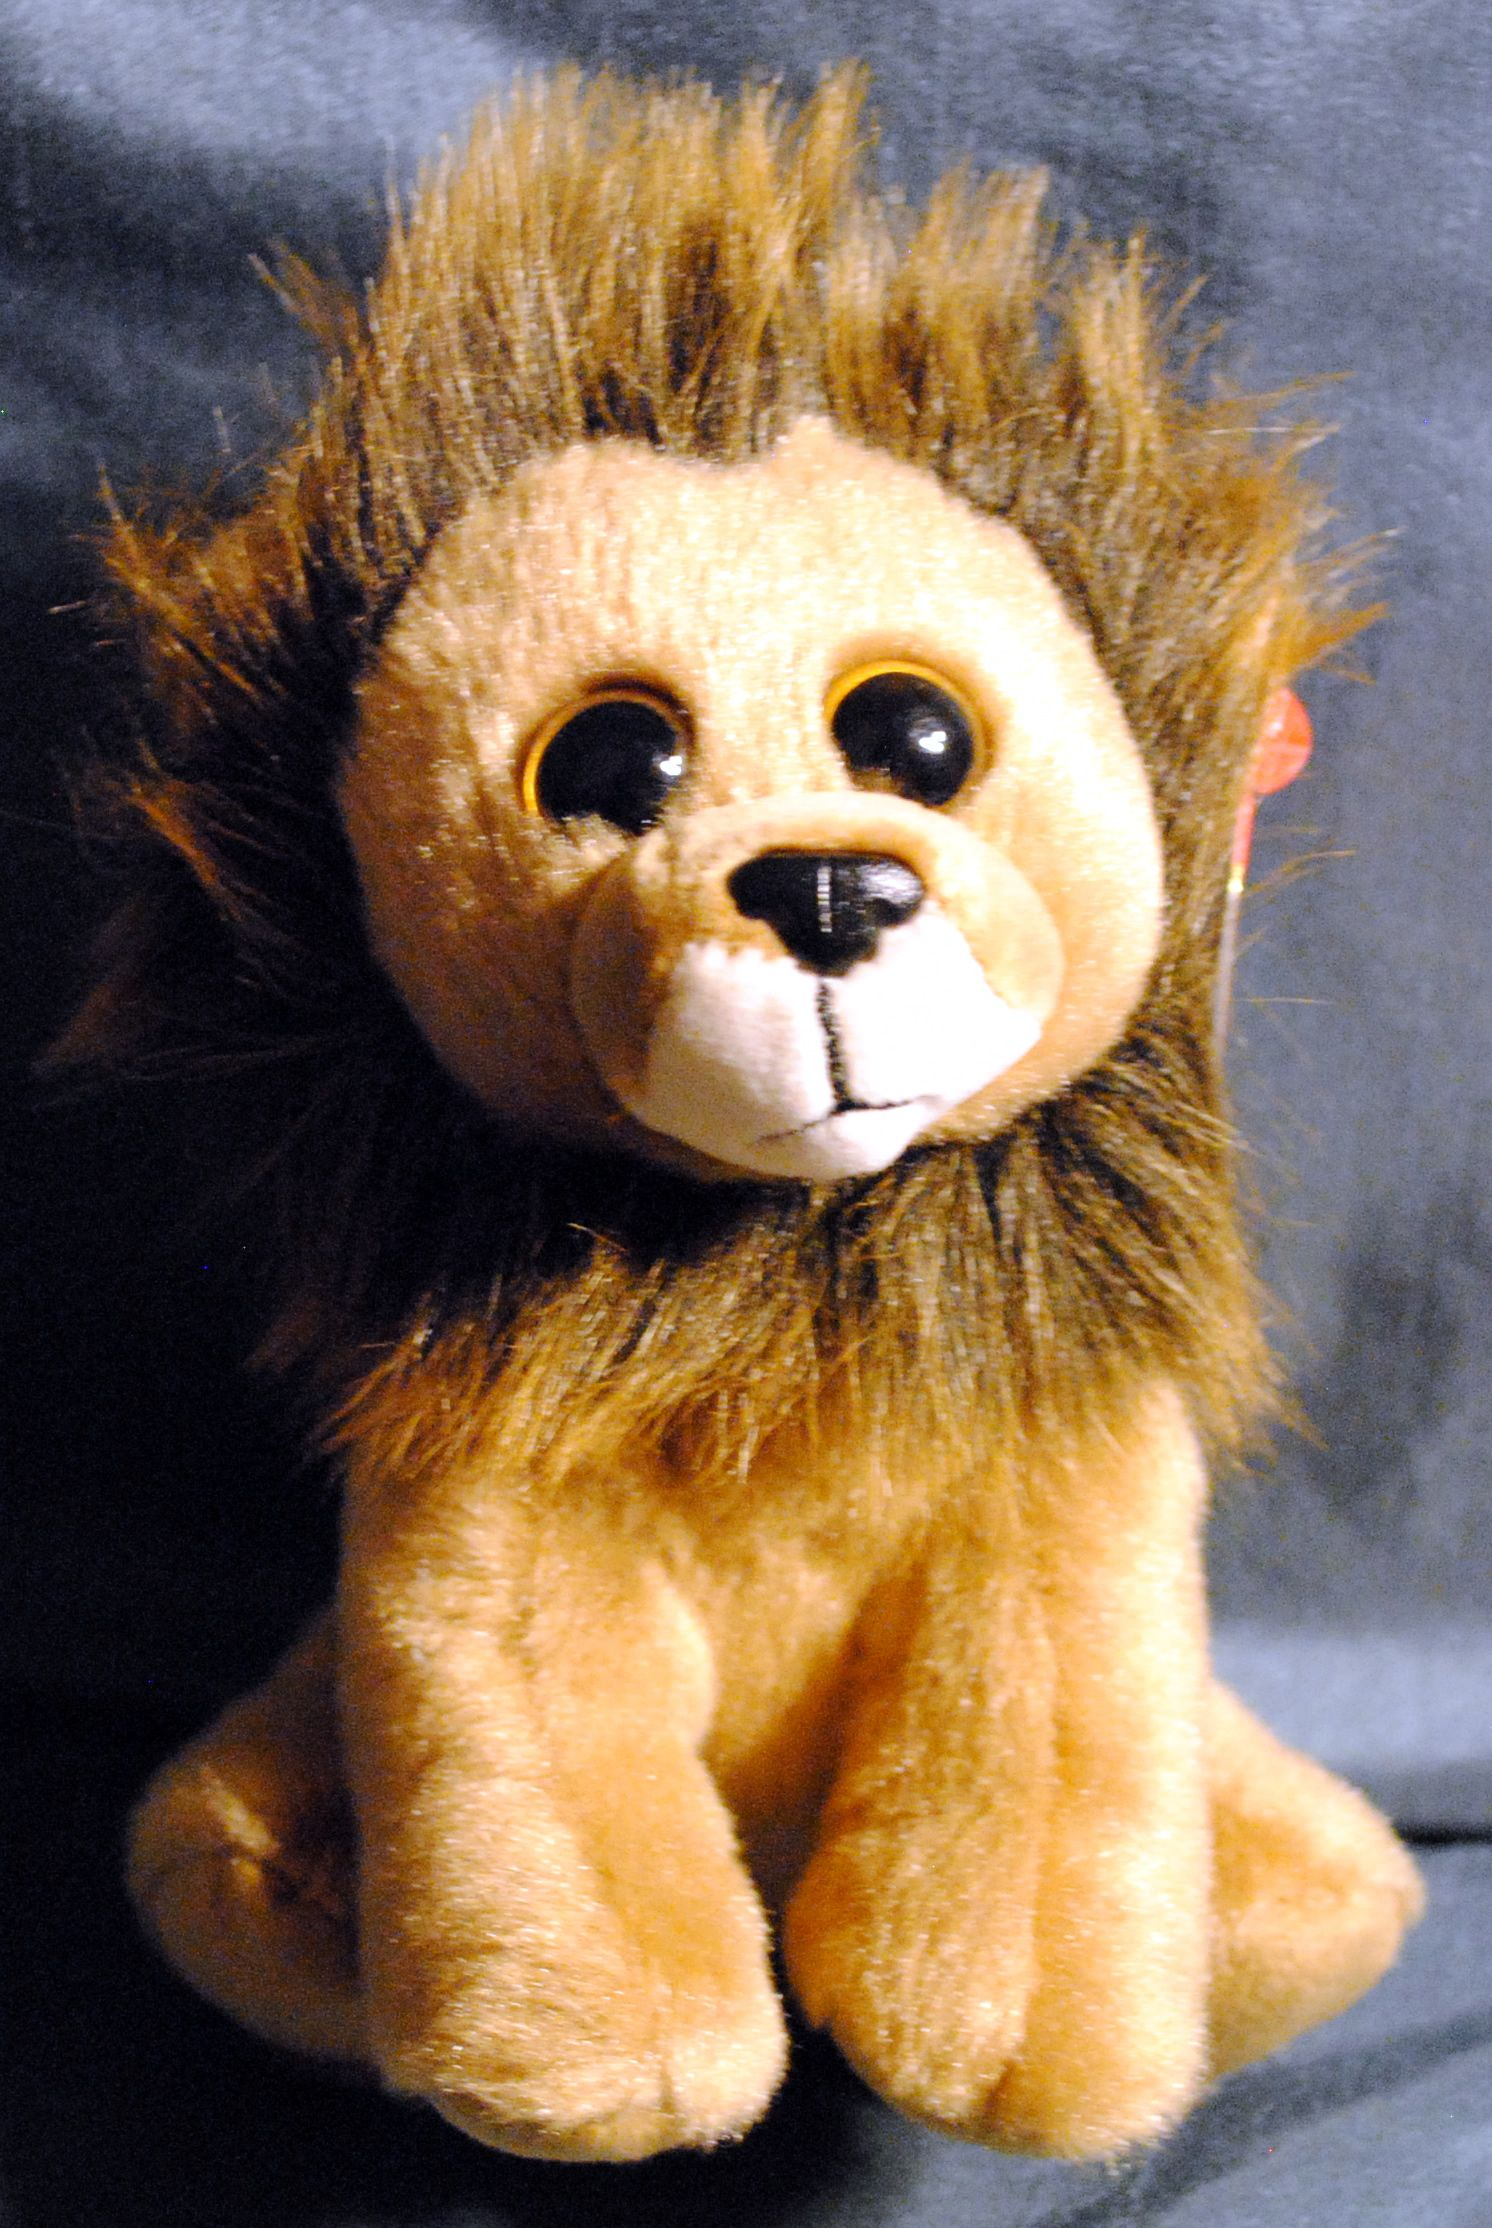 """Ty Original Beanie Babies ❤️ 6"""" Baby Babies Plush Cecil the Lion Action Figure - TY (2015) front image (front cover)"""